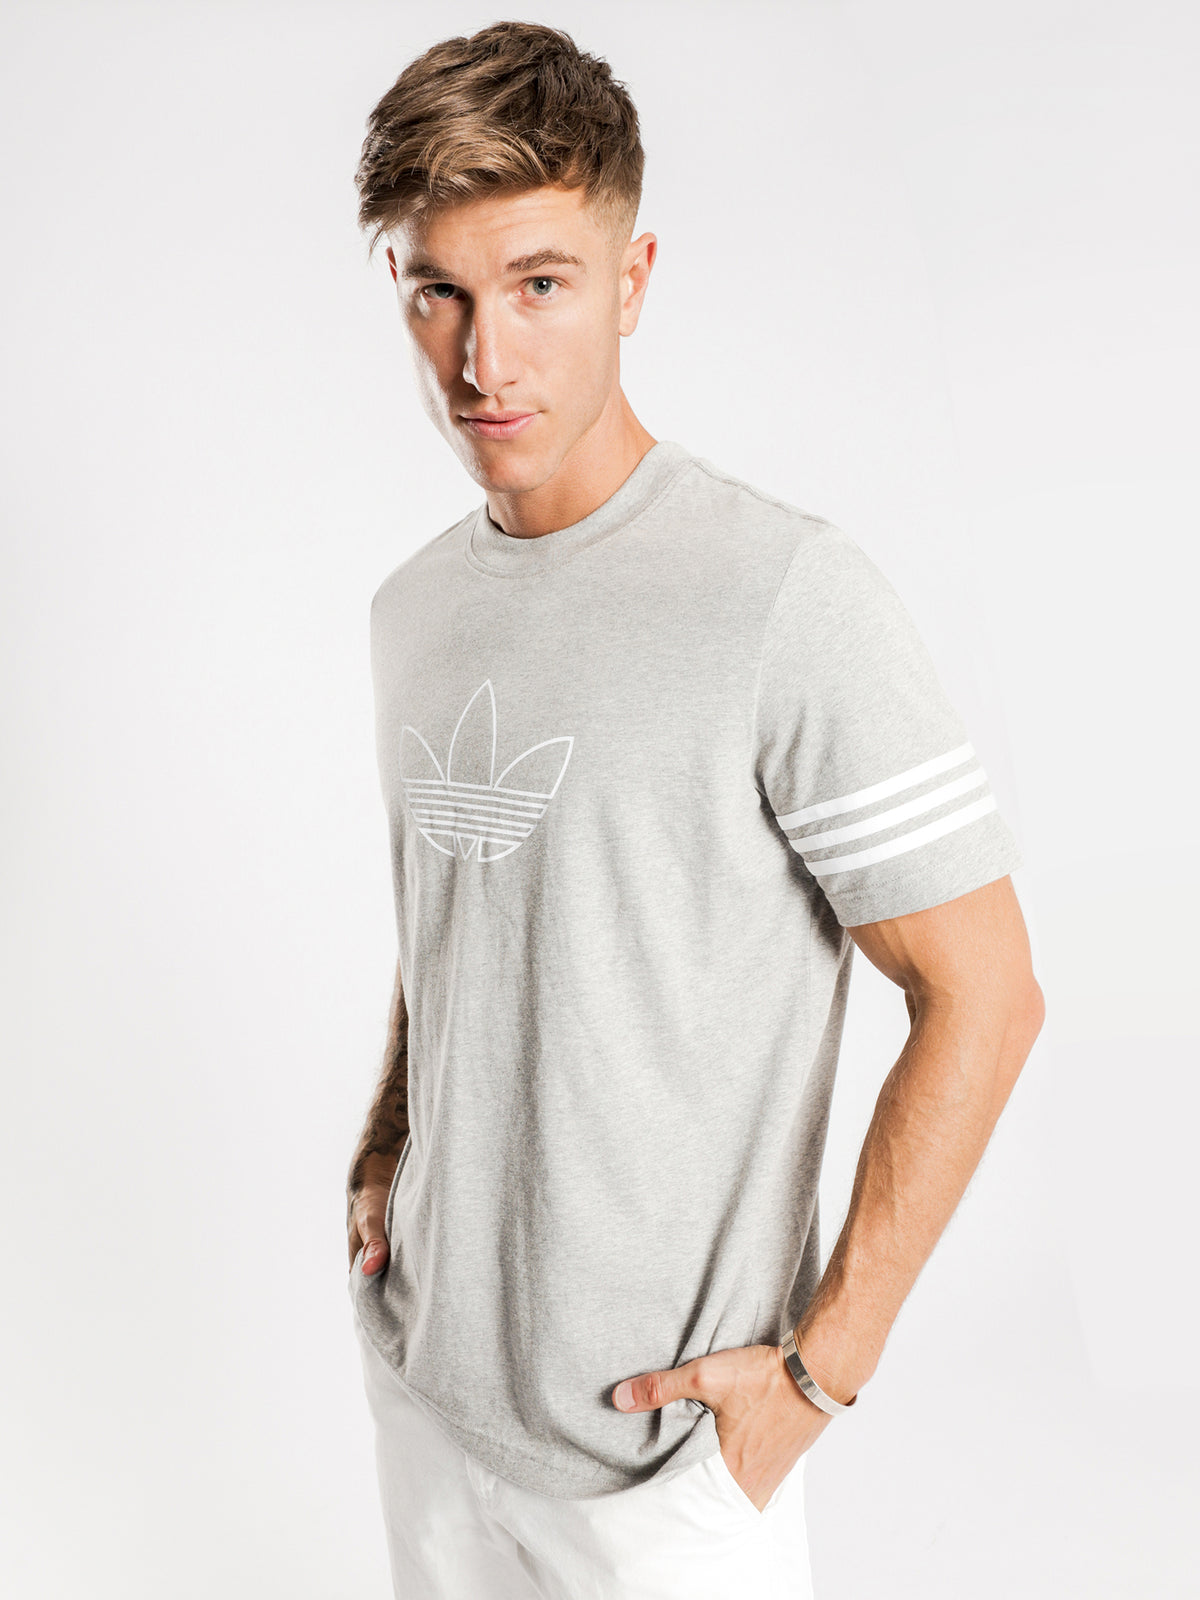 Outline T-Shirt in Grey